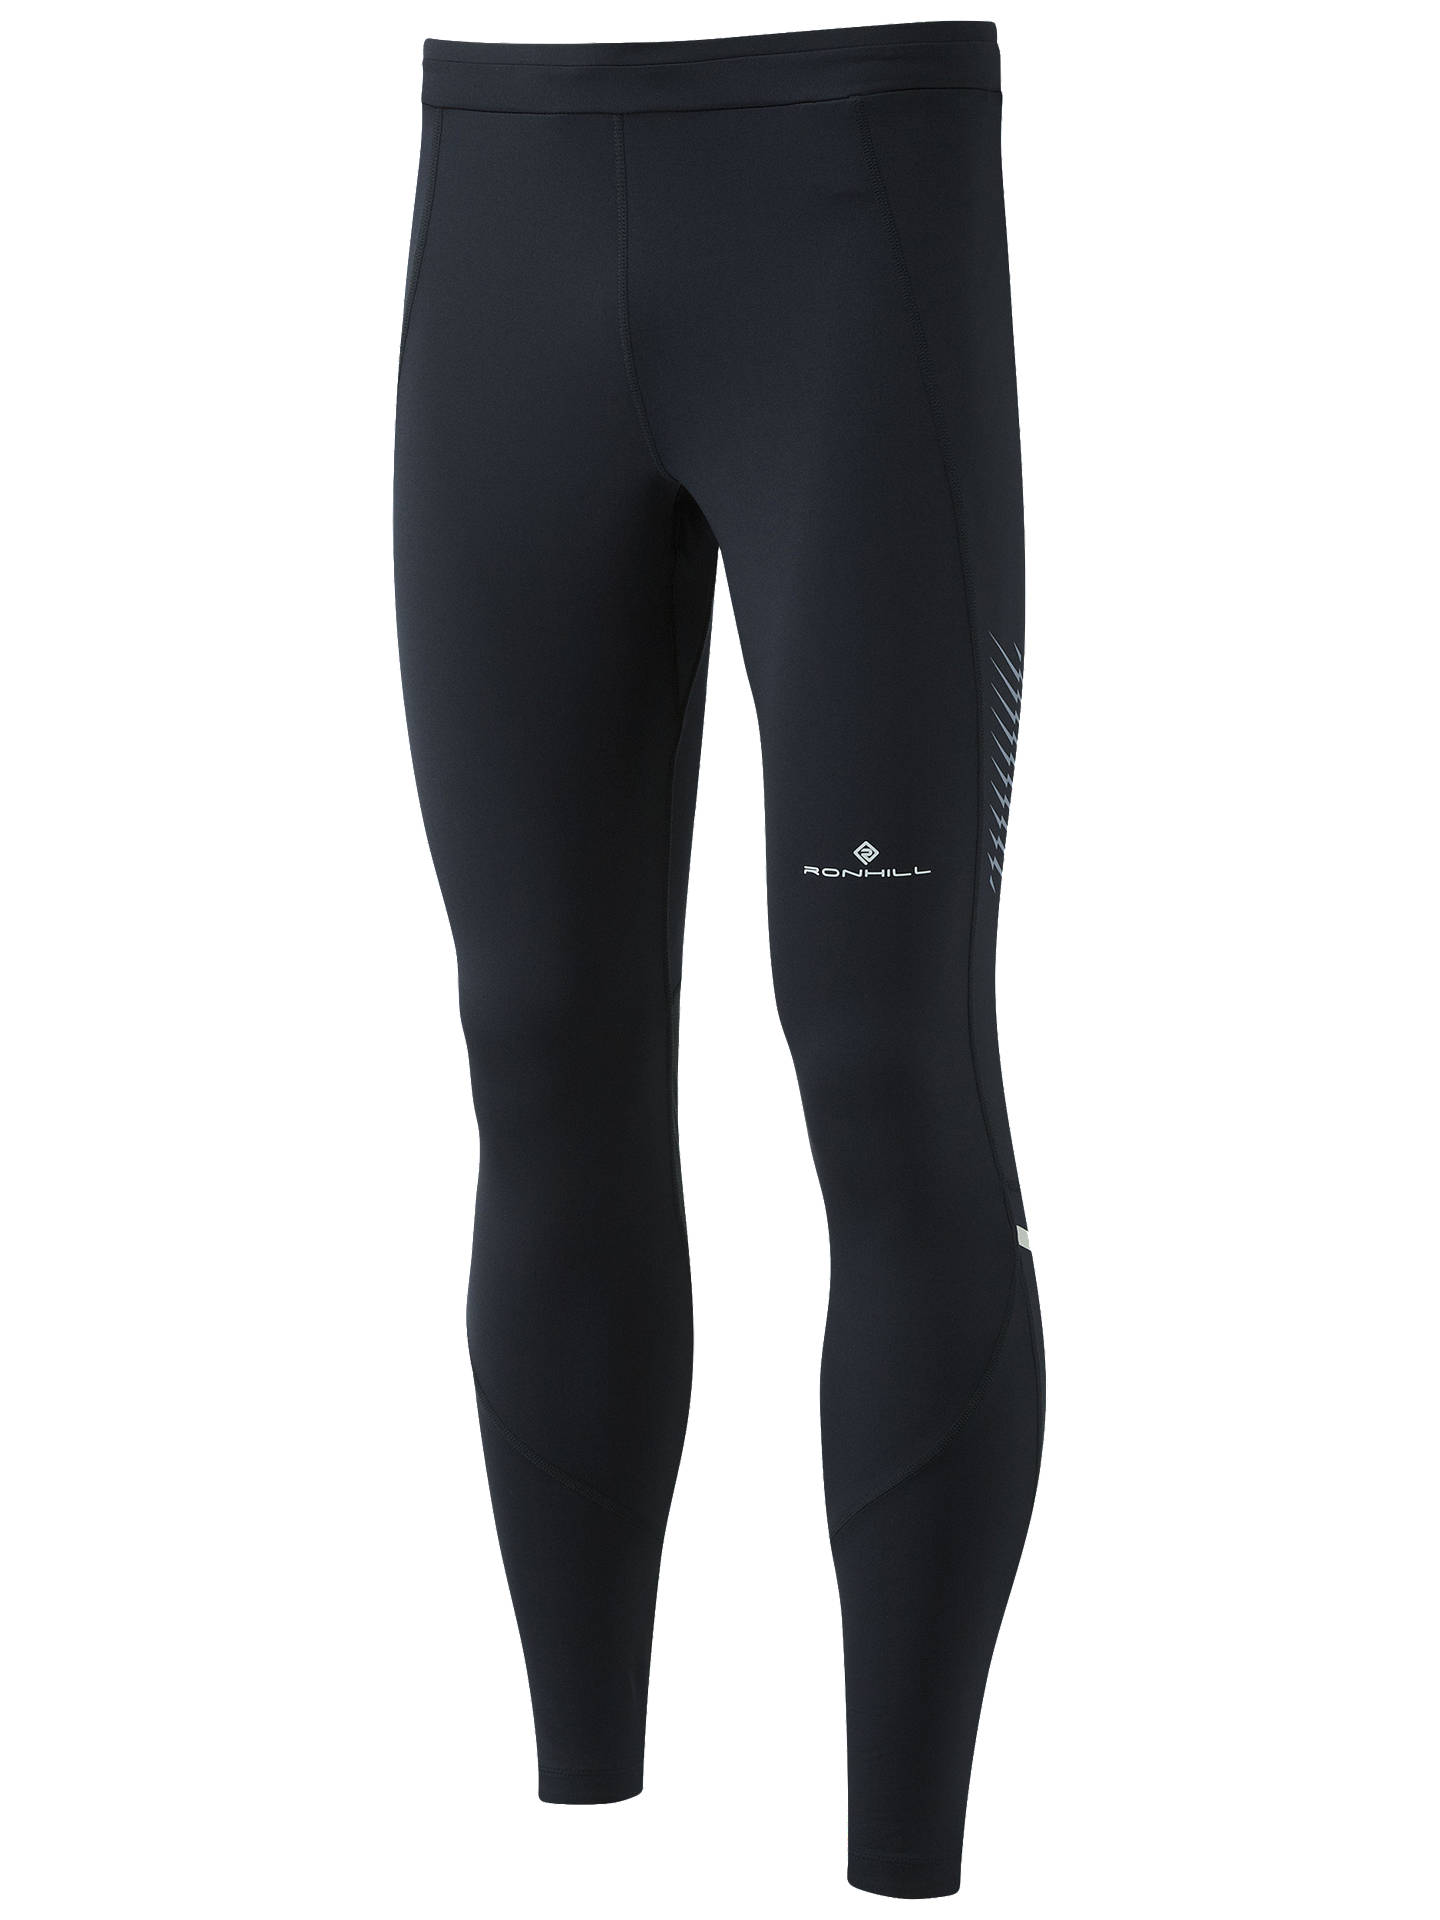 BuyRonhill Stride Stretch Running Tights, Black, S Online at johnlewis.com